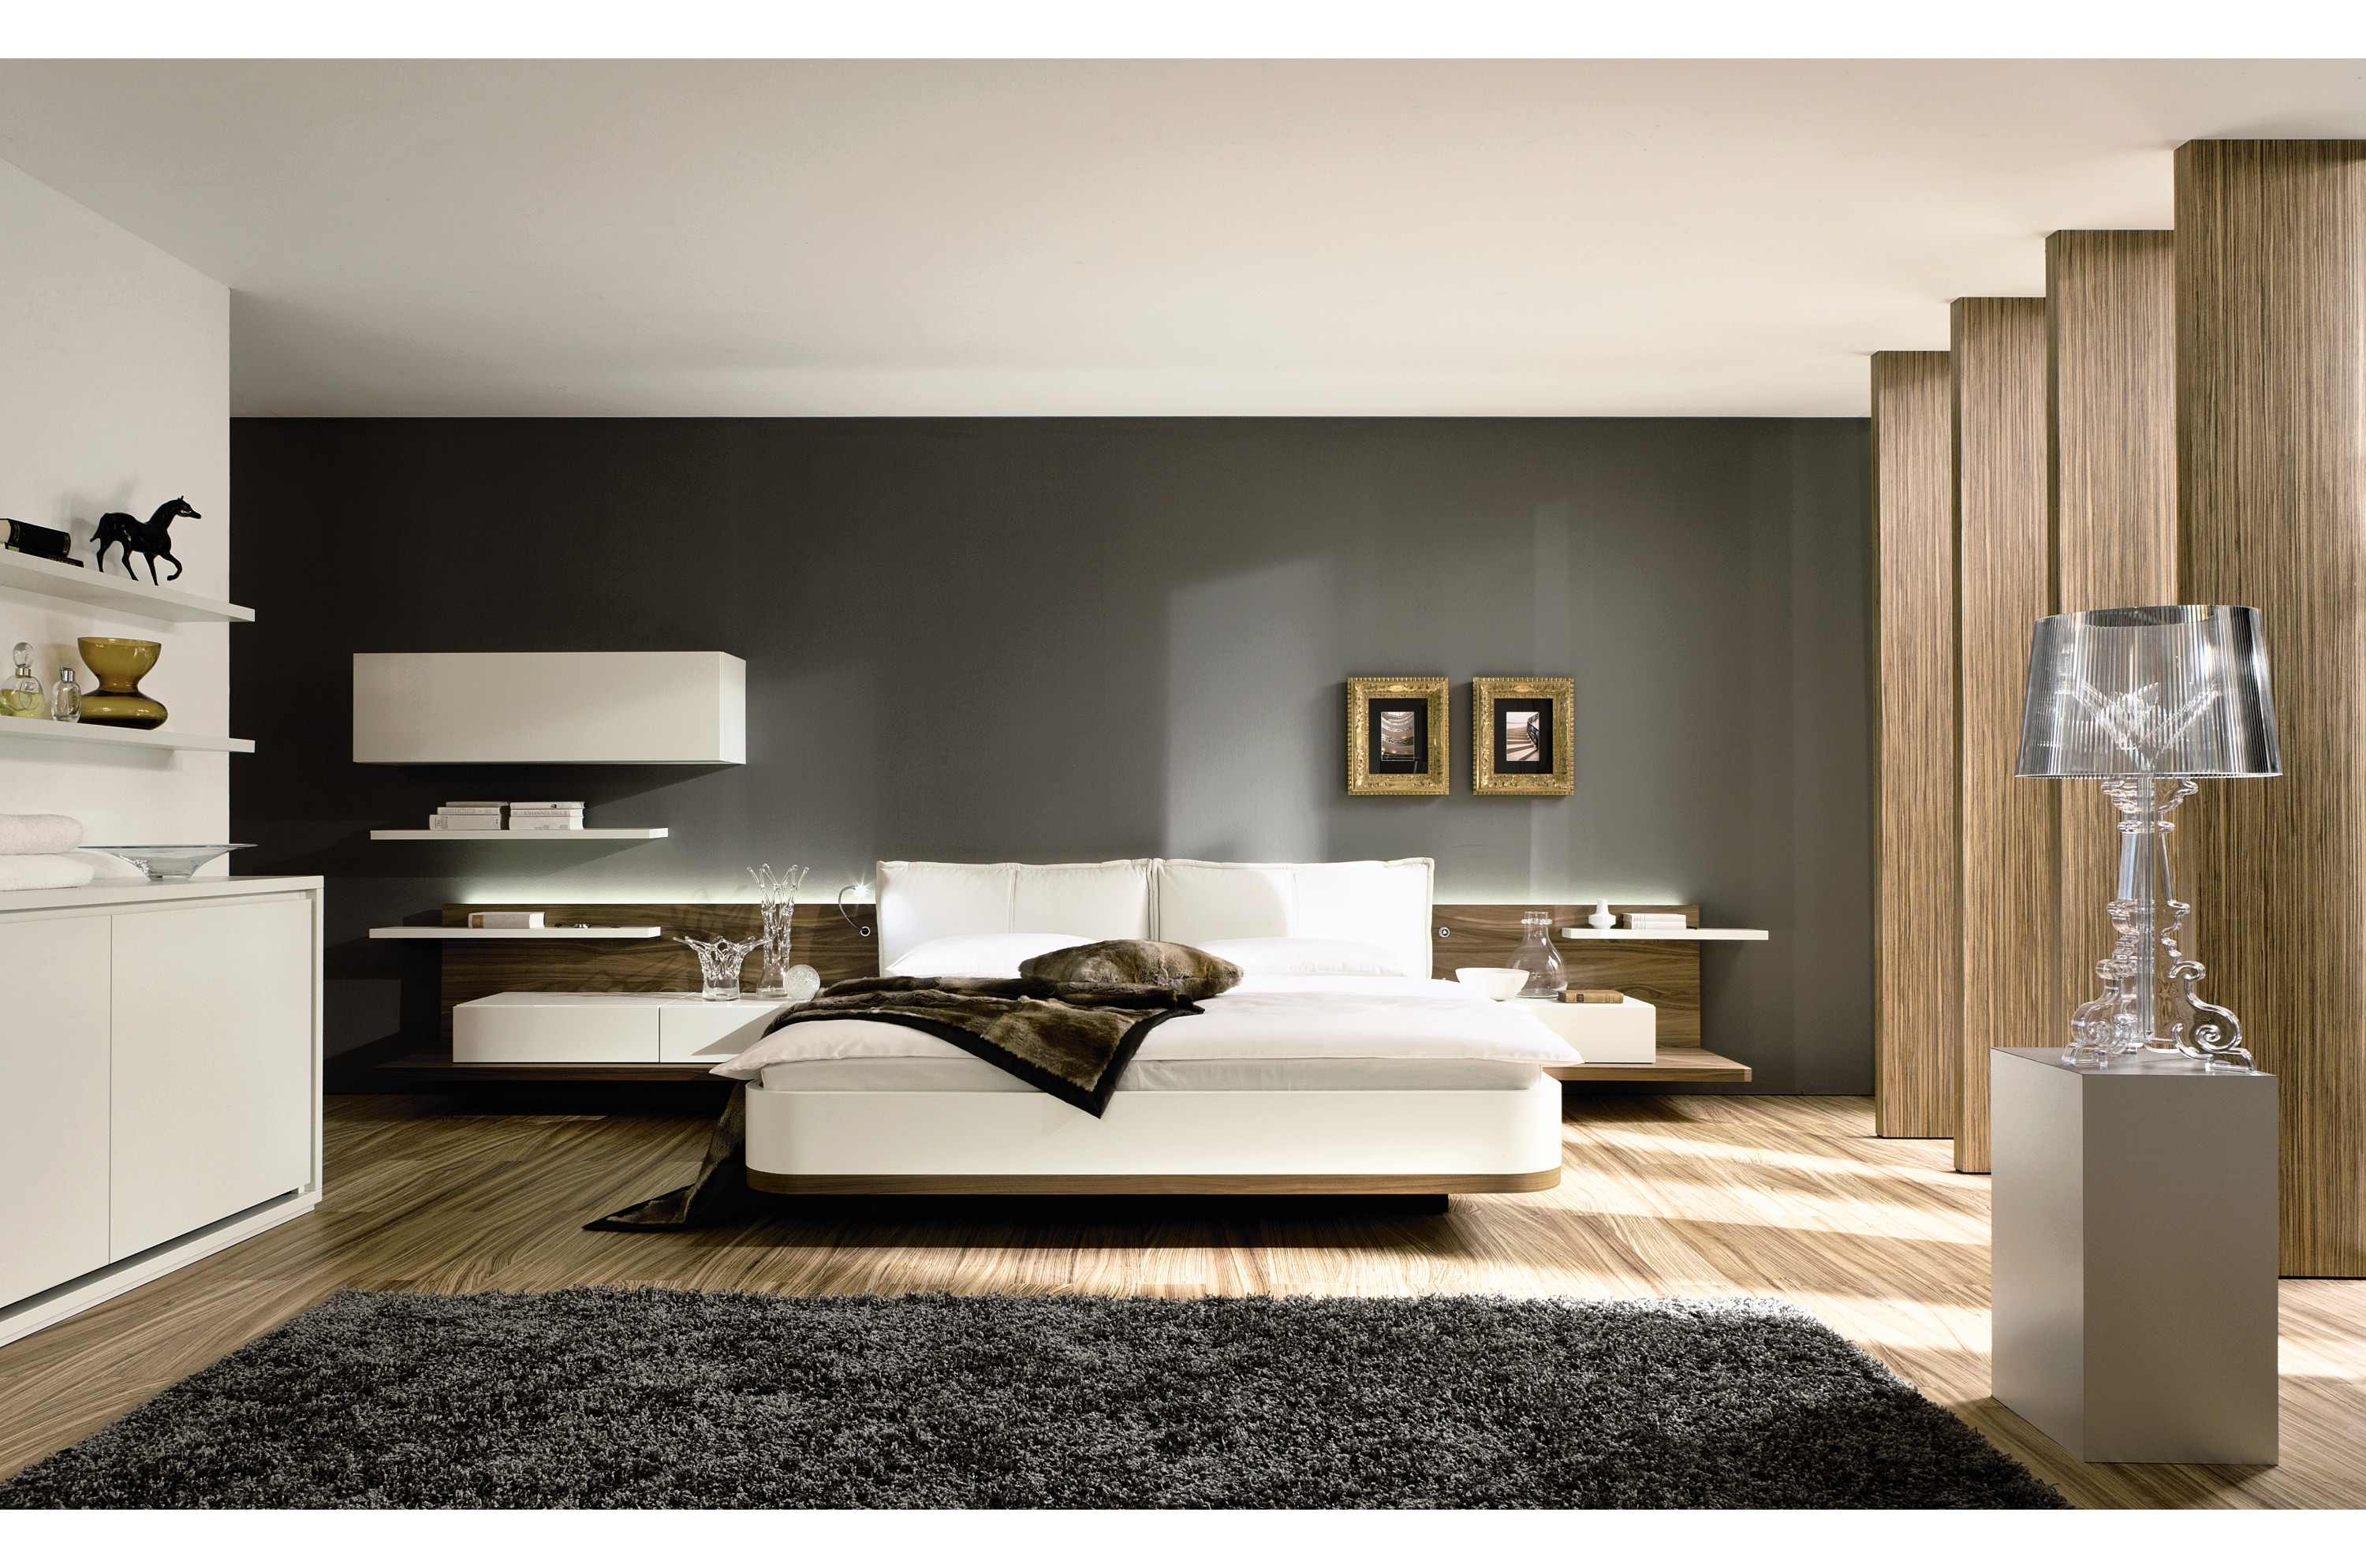 Modern bedroom innovation bedroom ideas interior design for Interior design contemporary style